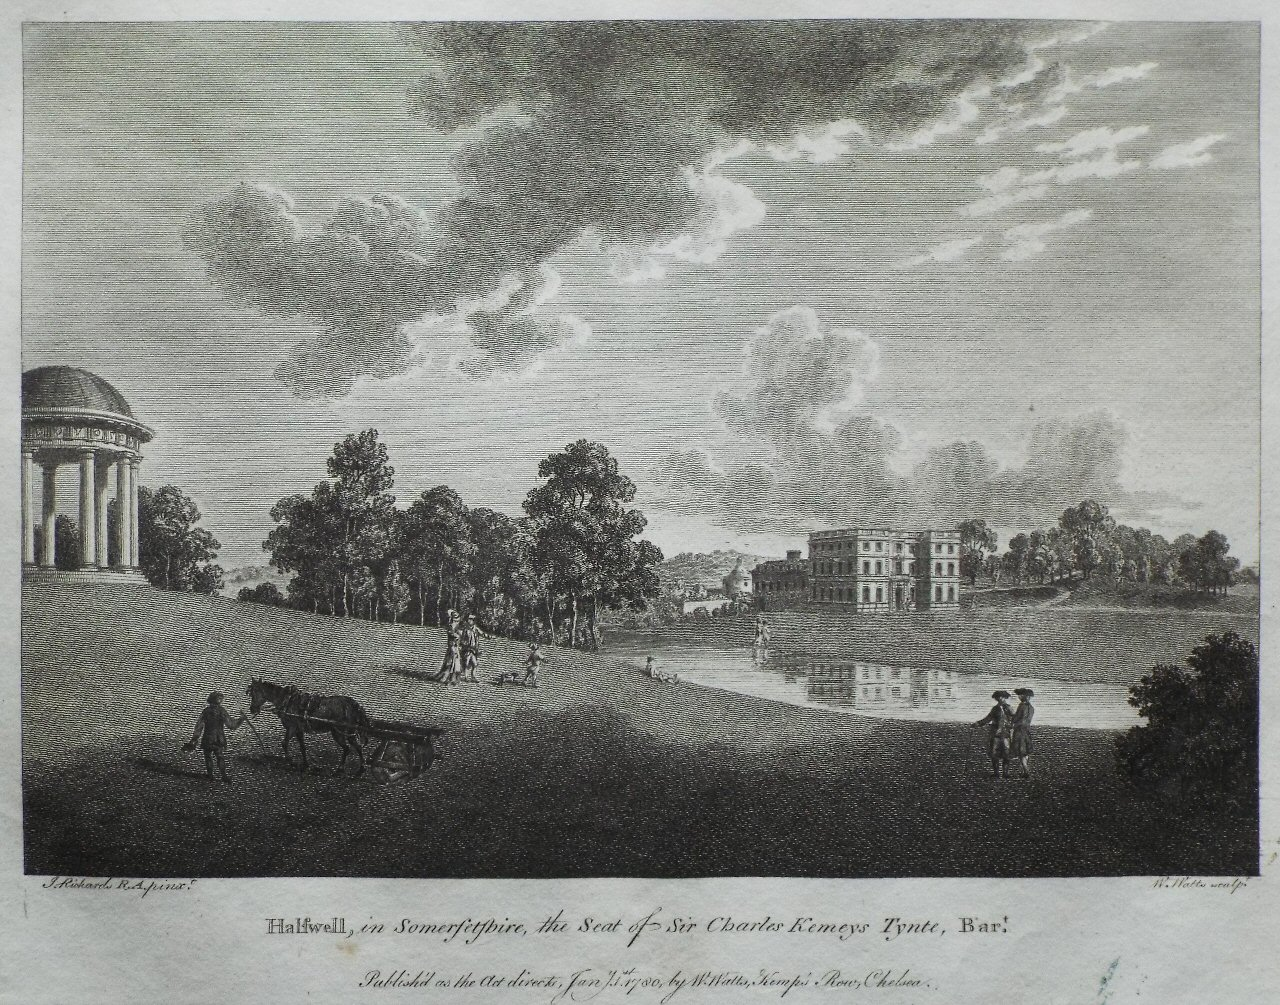 Print - Halswell, in Somersetshire, the Seat of ir Charles Kemeys Tynte, Bart. - Watts